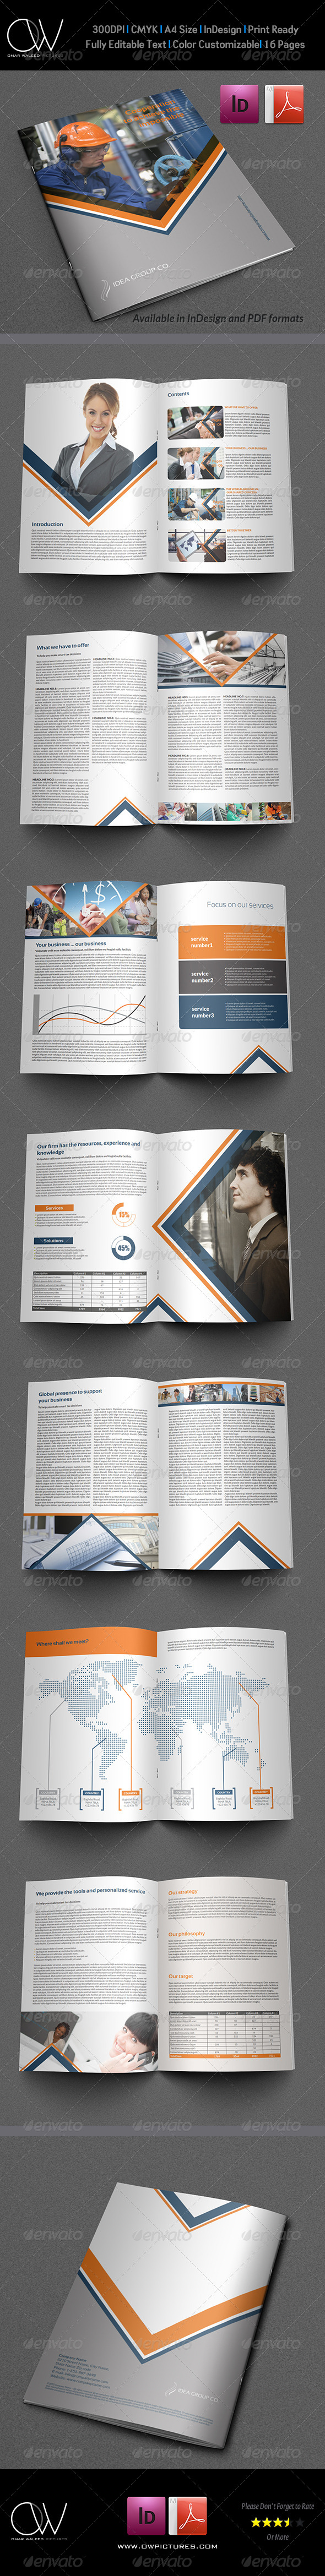 GraphicRiver Company Brochure Template Vol.16 16 Pages 6436952